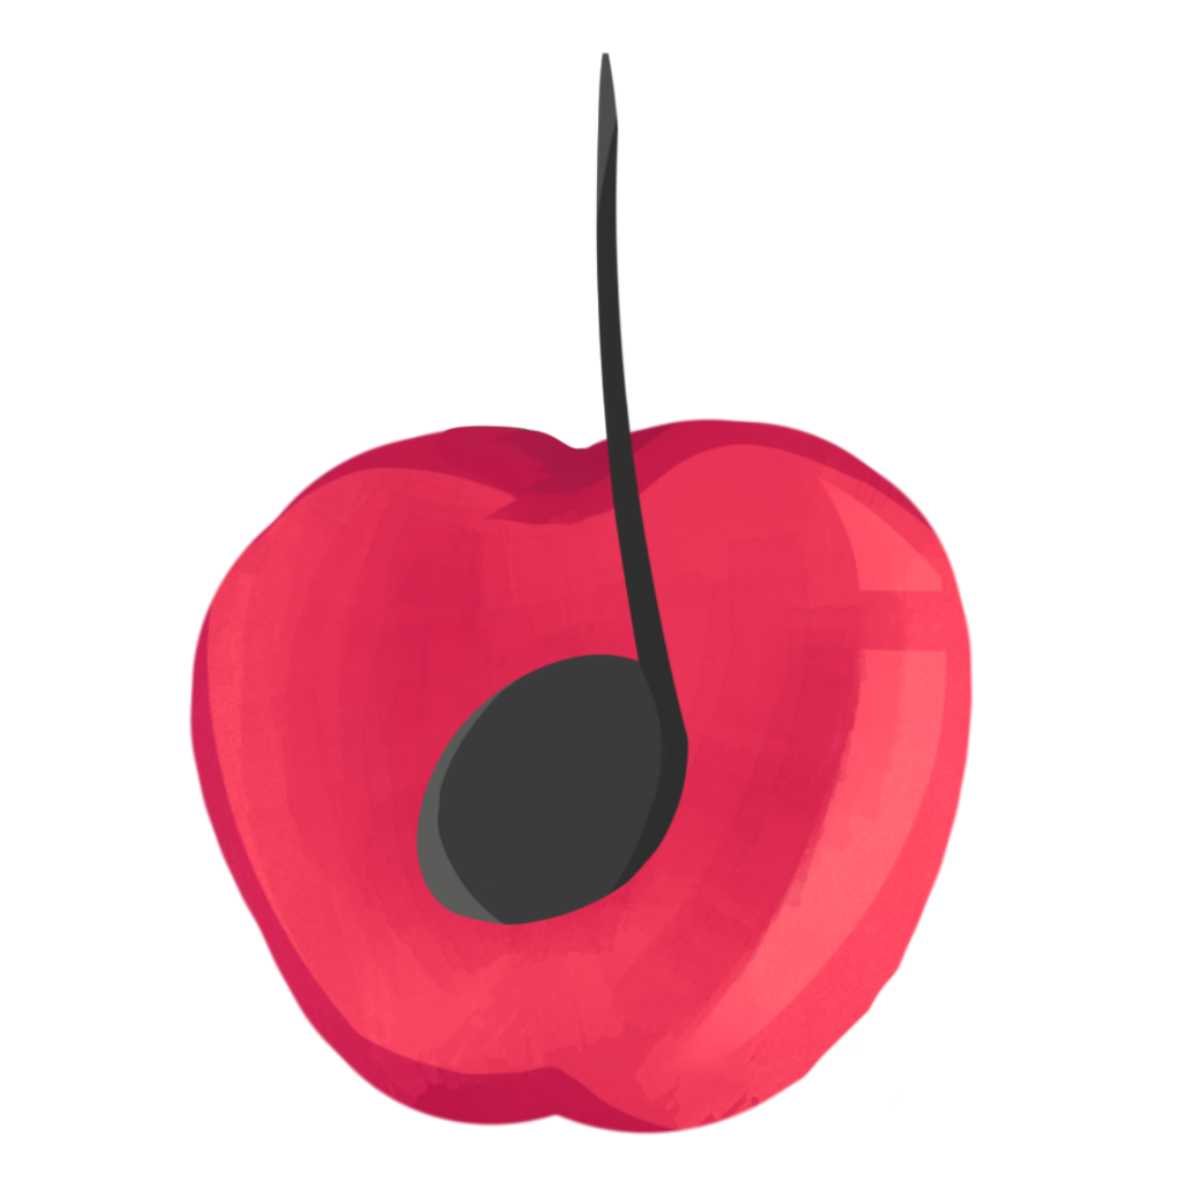 A quarter note overlaid on a cartoon apple